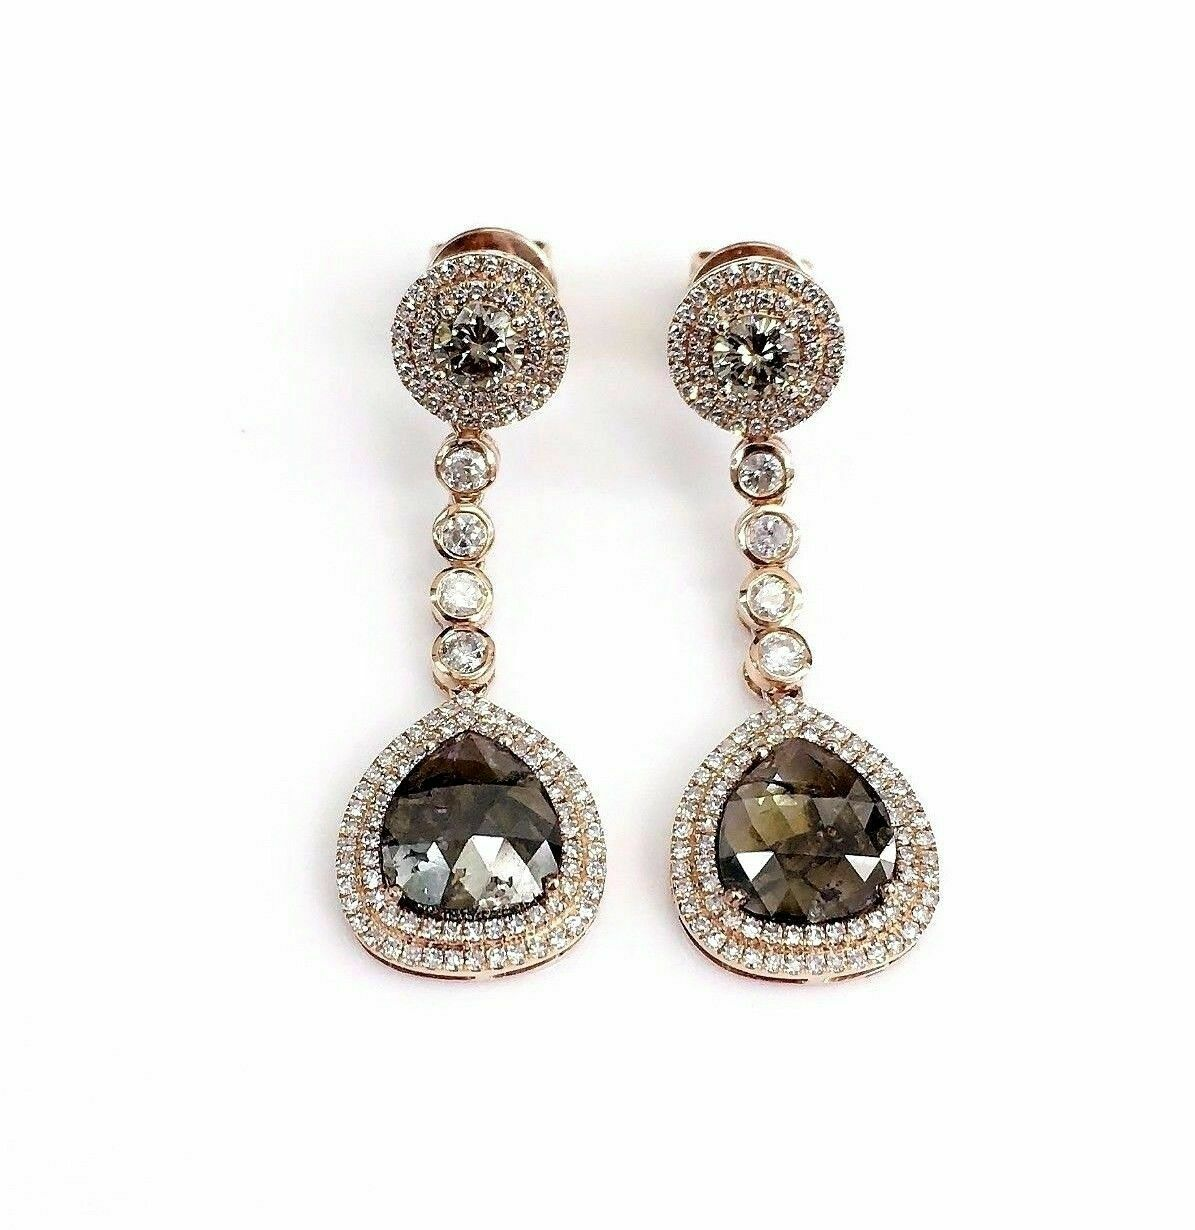 3.85 Carats Drop Rustic Pears Champagne Diamond Dangling Earrings 14kt Rose Gold